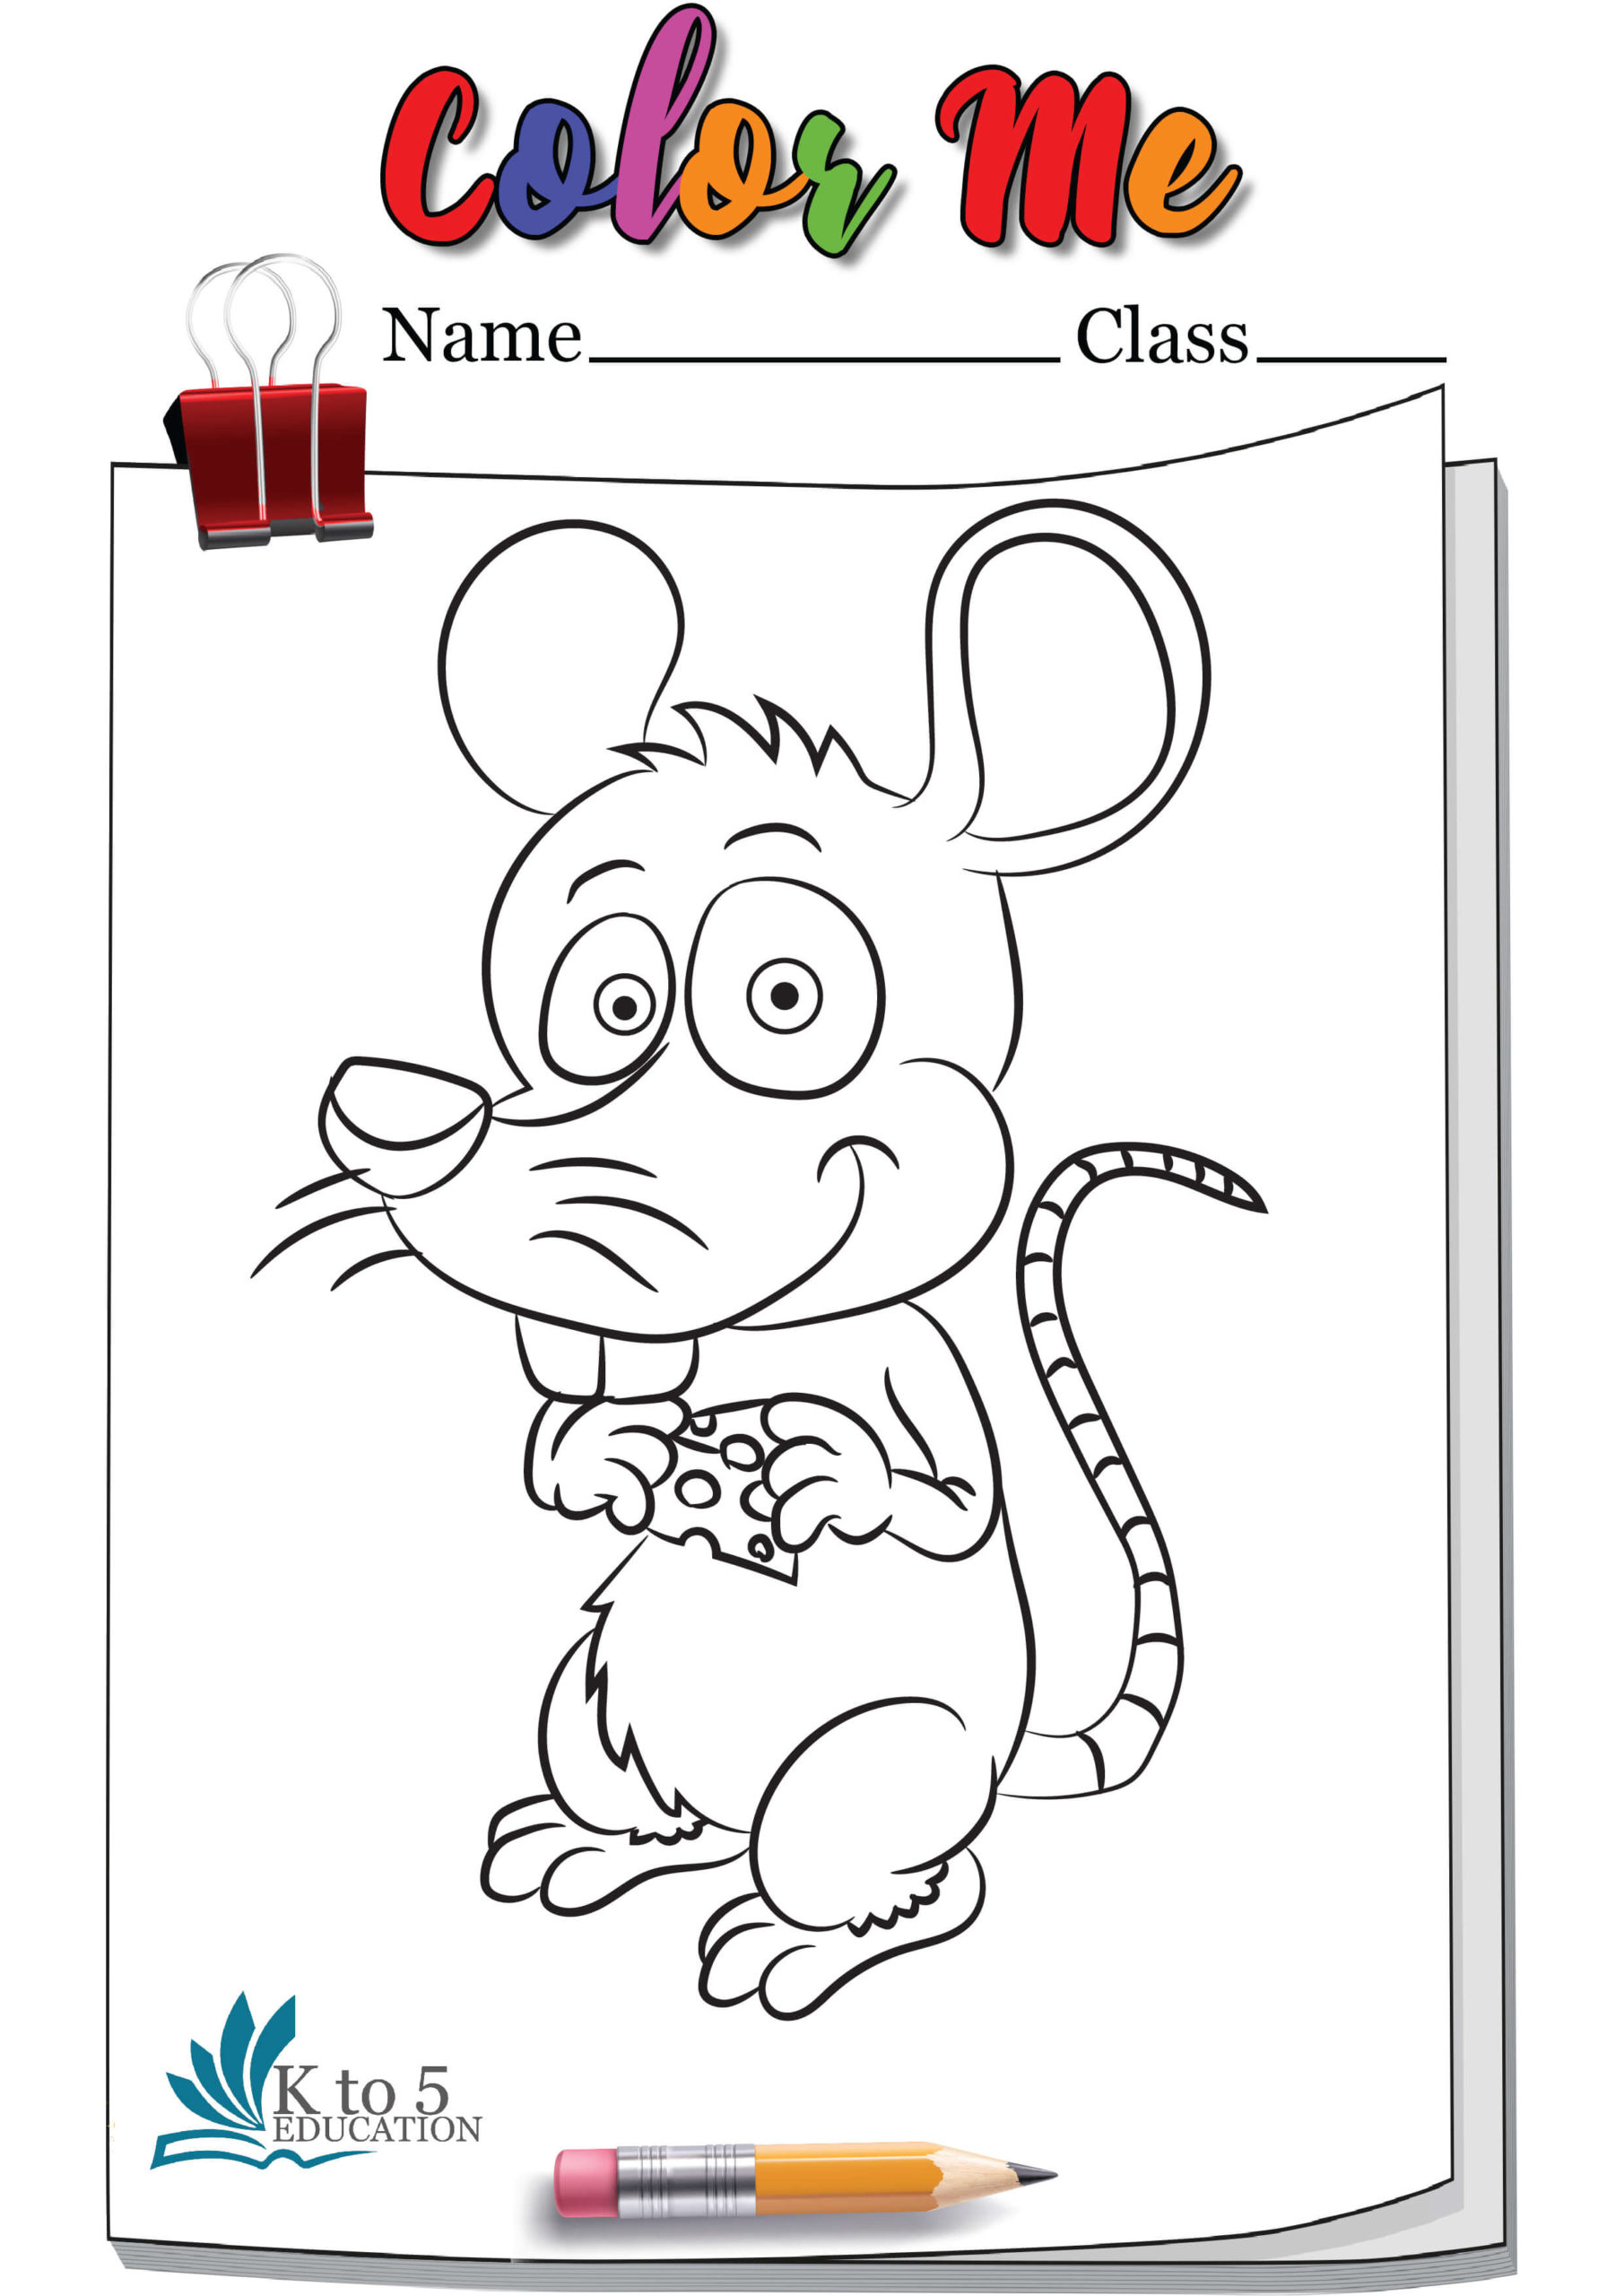 Happy Smiling Rat coloring Page worksheet